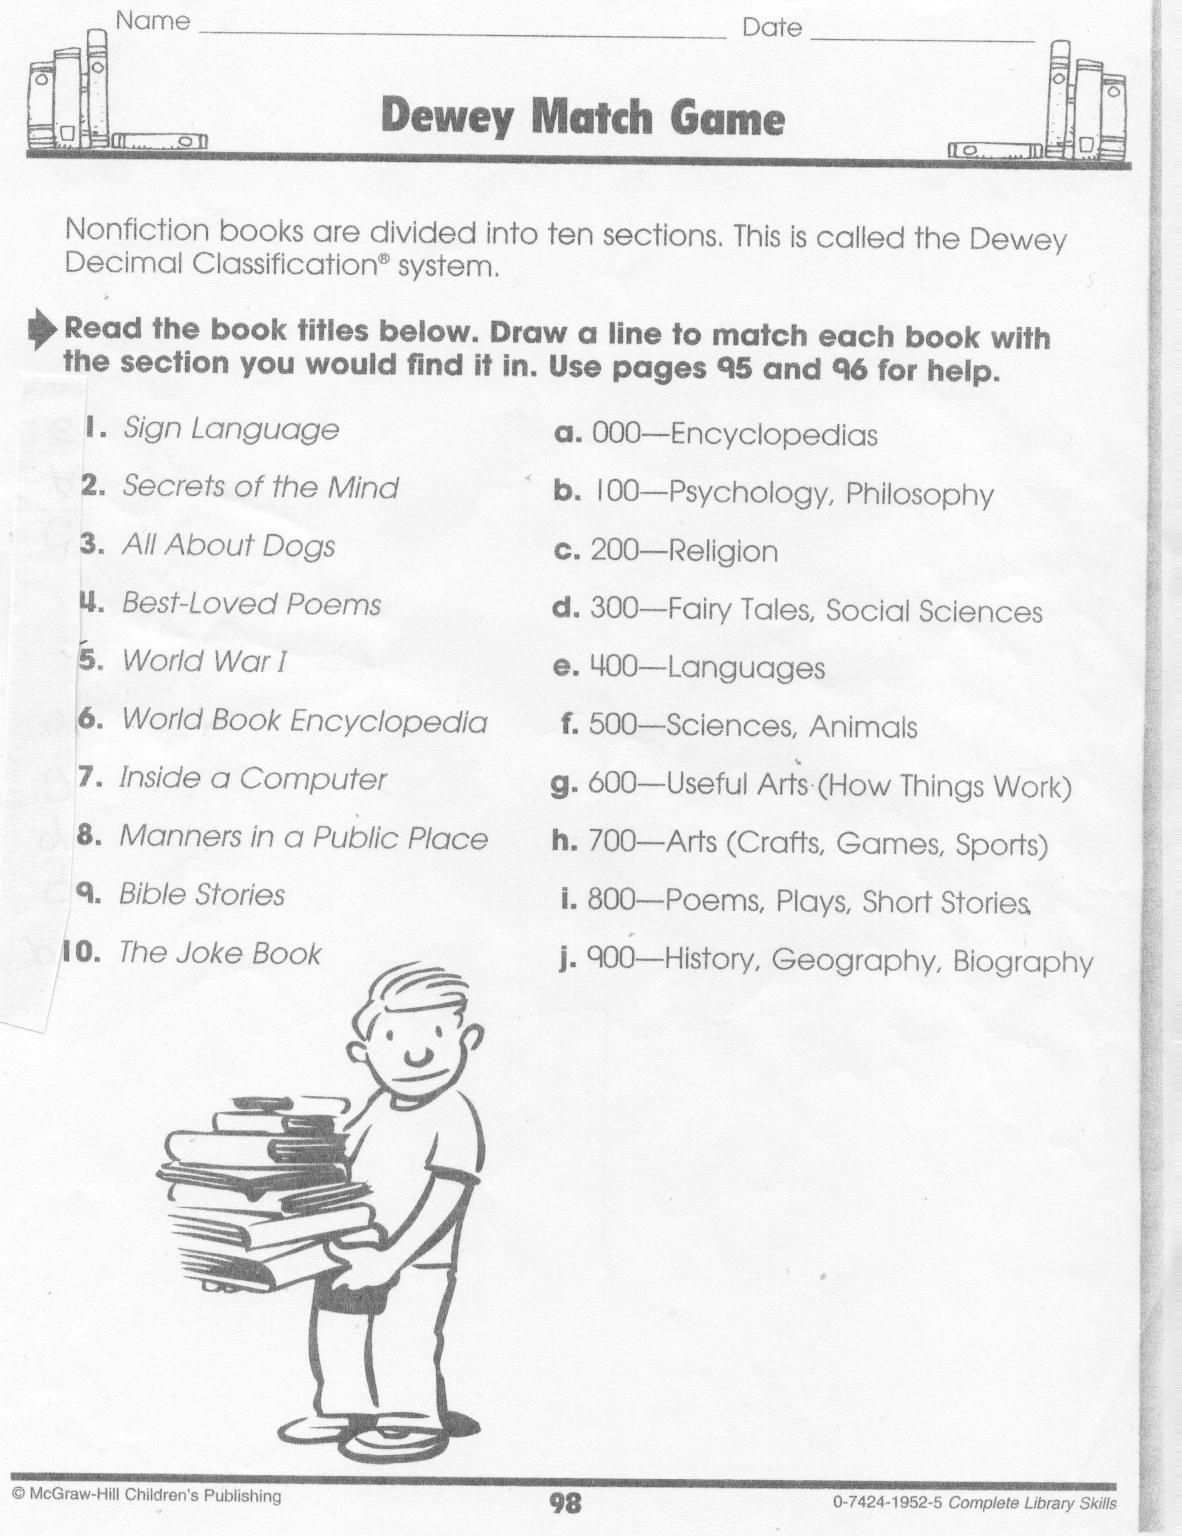 worksheet Dewey Decimal Worksheet dewey decimal worksheet for kids printable blog cheat sheet google search library stuff